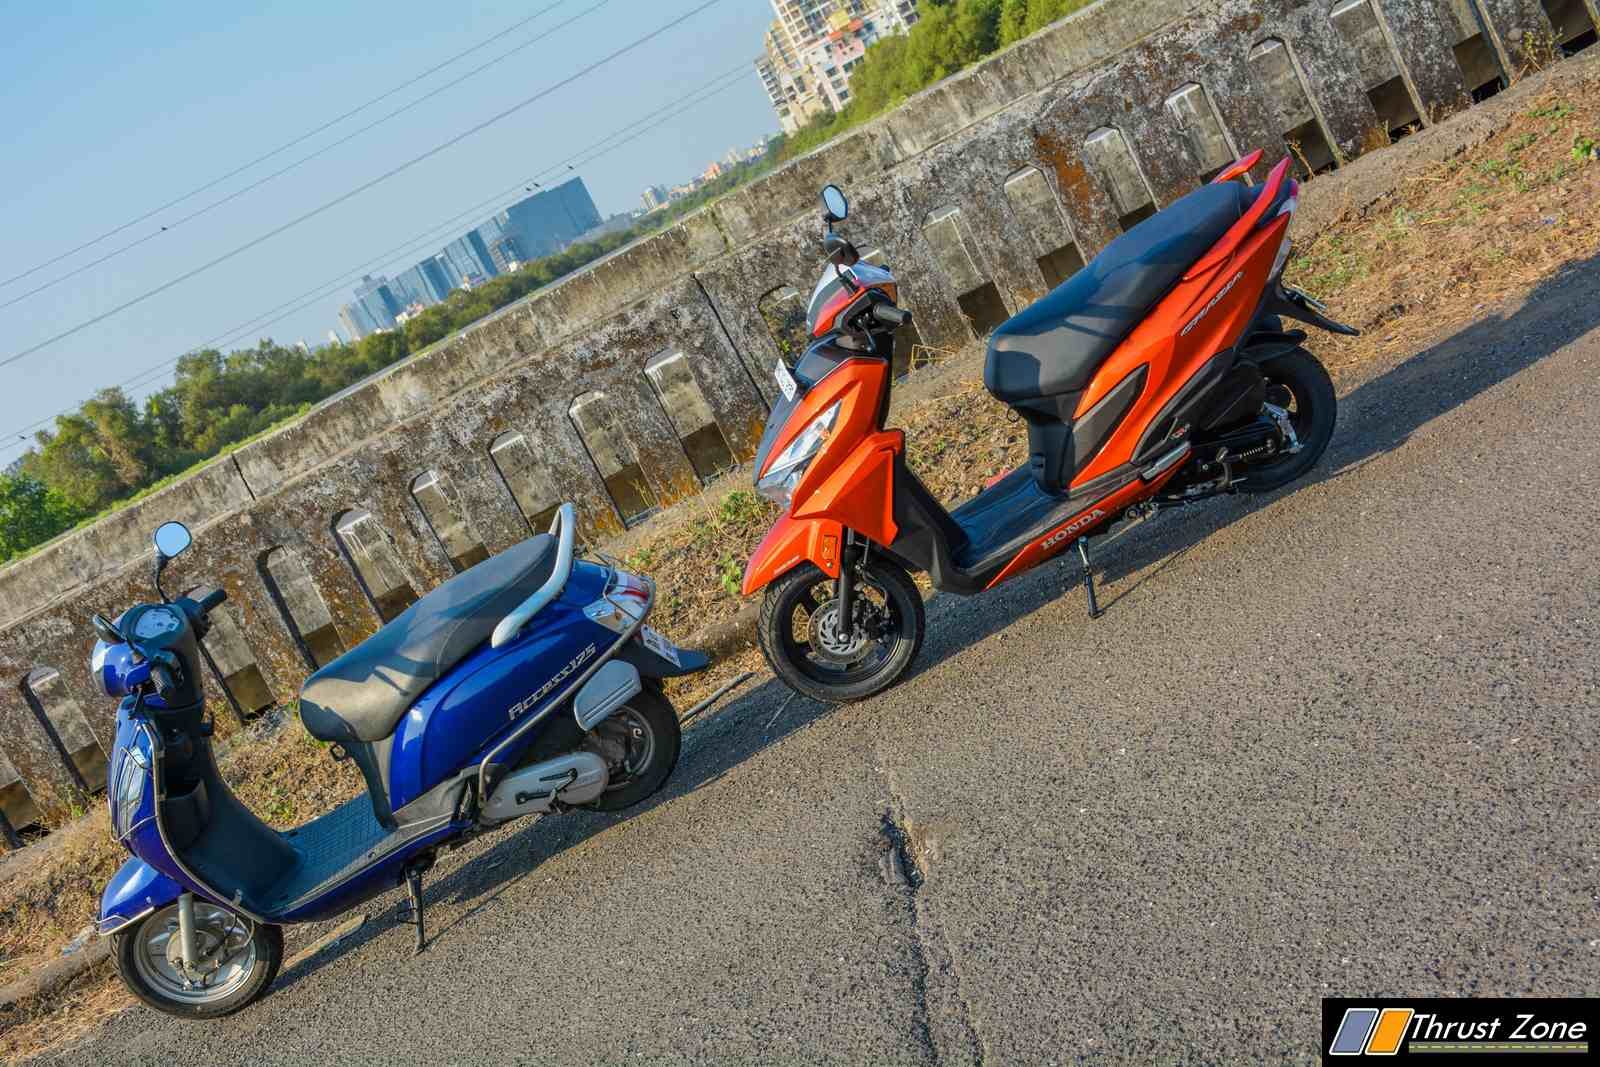 Honda Grazia vs Suzuki Access 125 - Comparison-Shootout-13